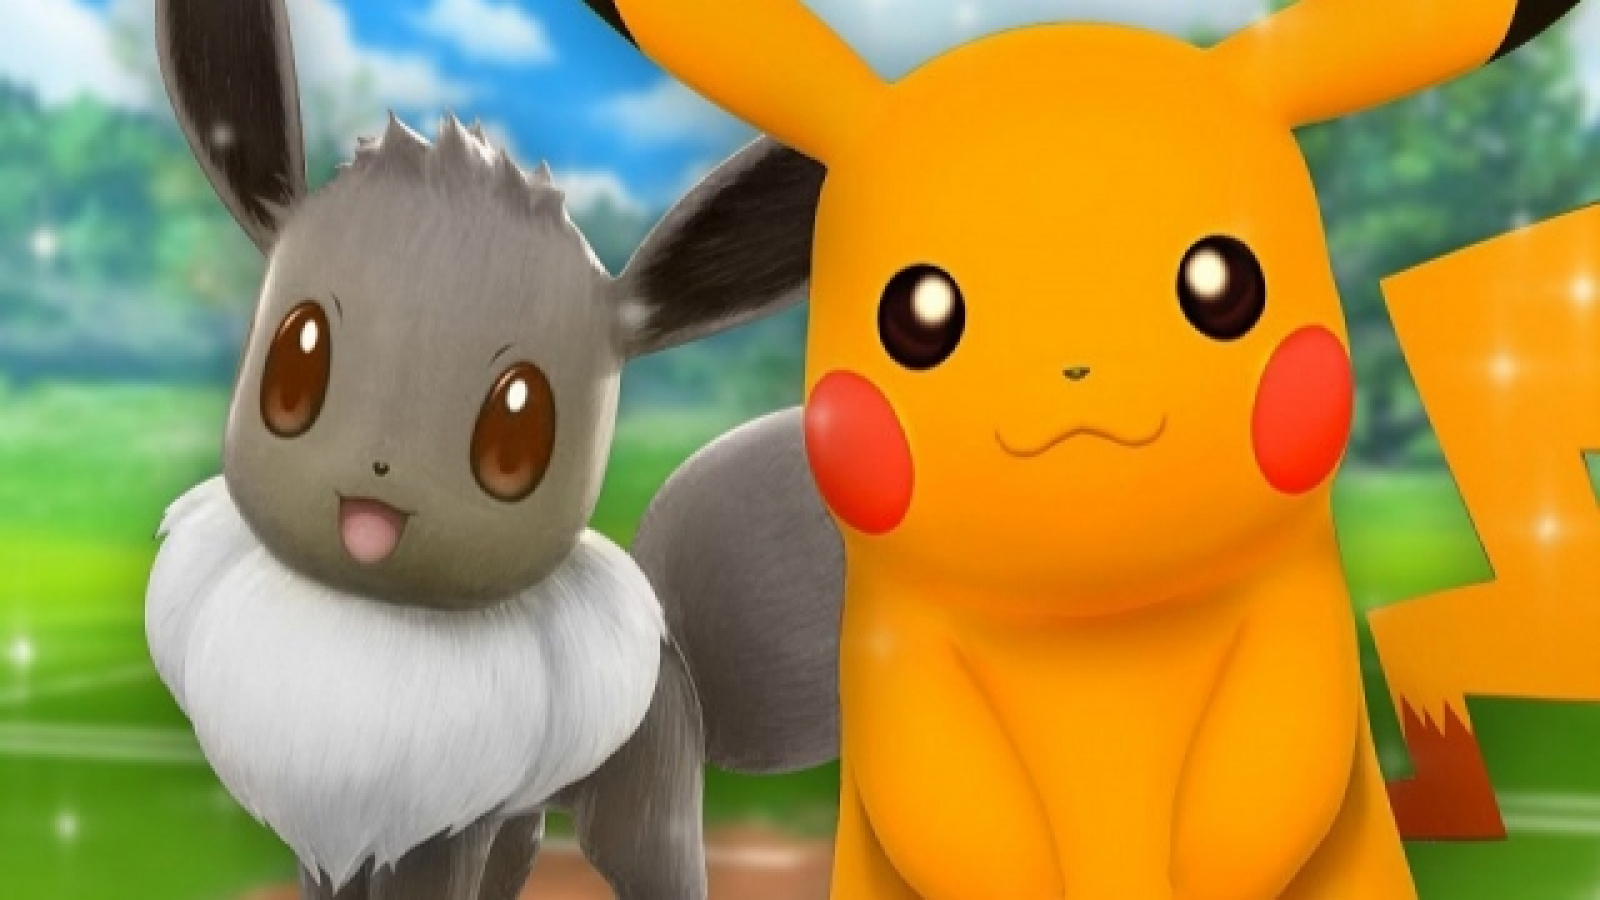 Best Eevee Evolution Pokemon Go 2020.Pokemon Sword And Shield Confirms Eevee And All Of Its